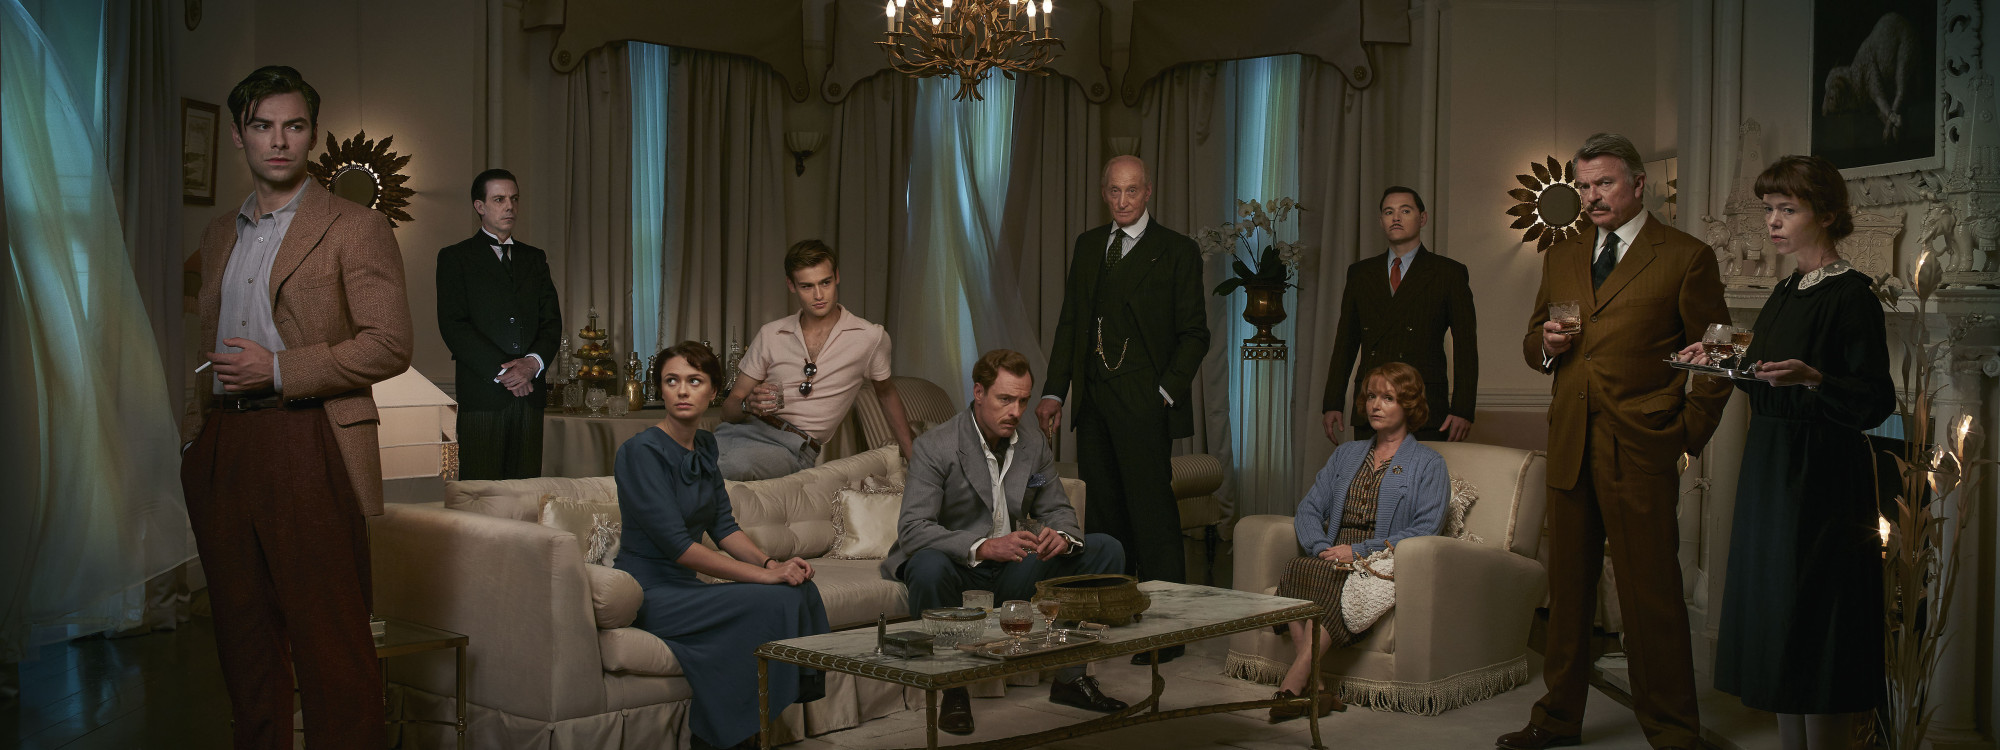 The Ensemble Cast of And Then There Were None